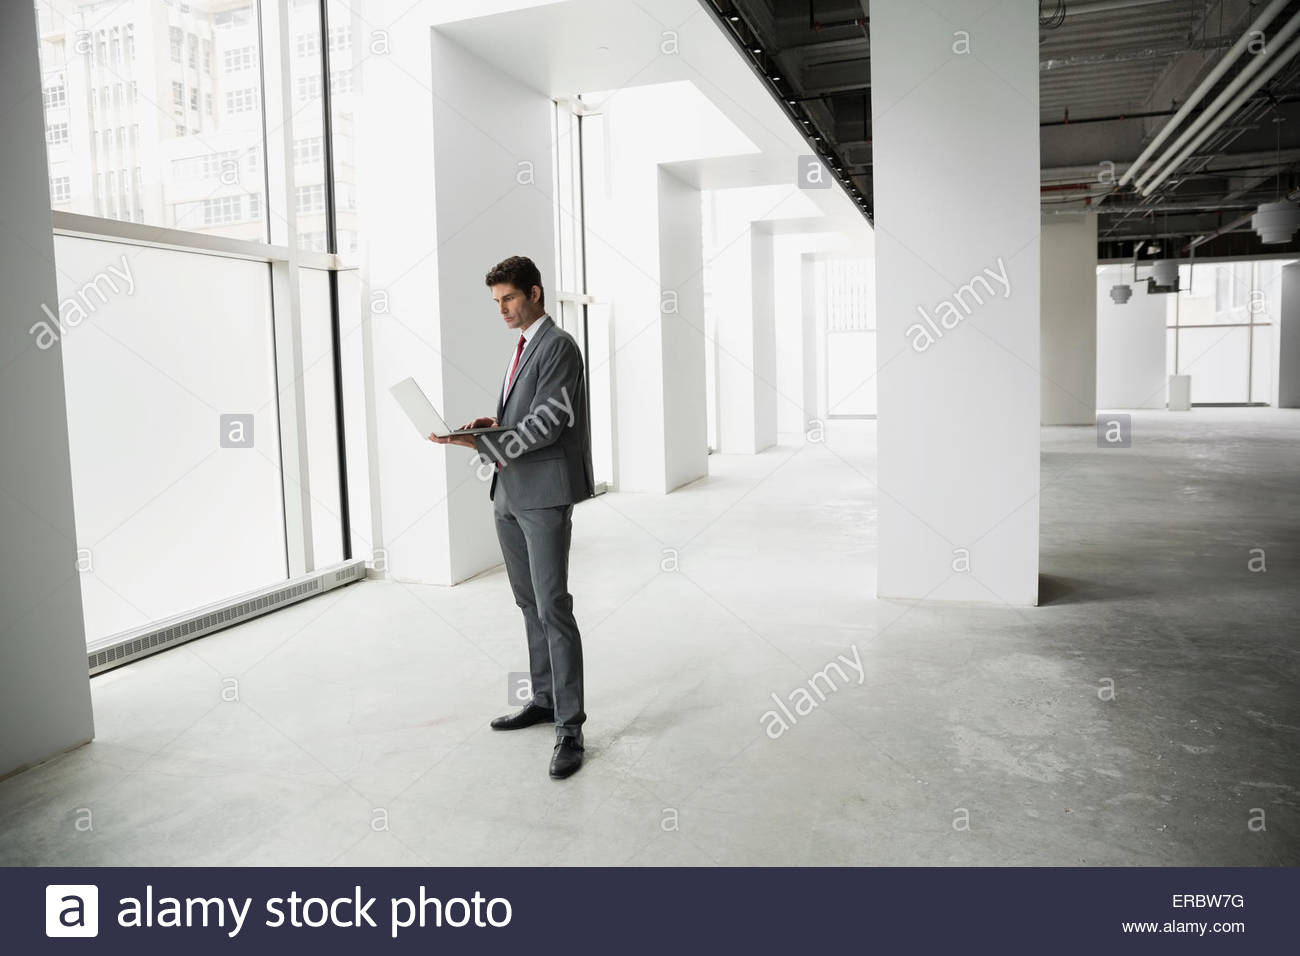 Businessman using laptop in empty office - Stock Image